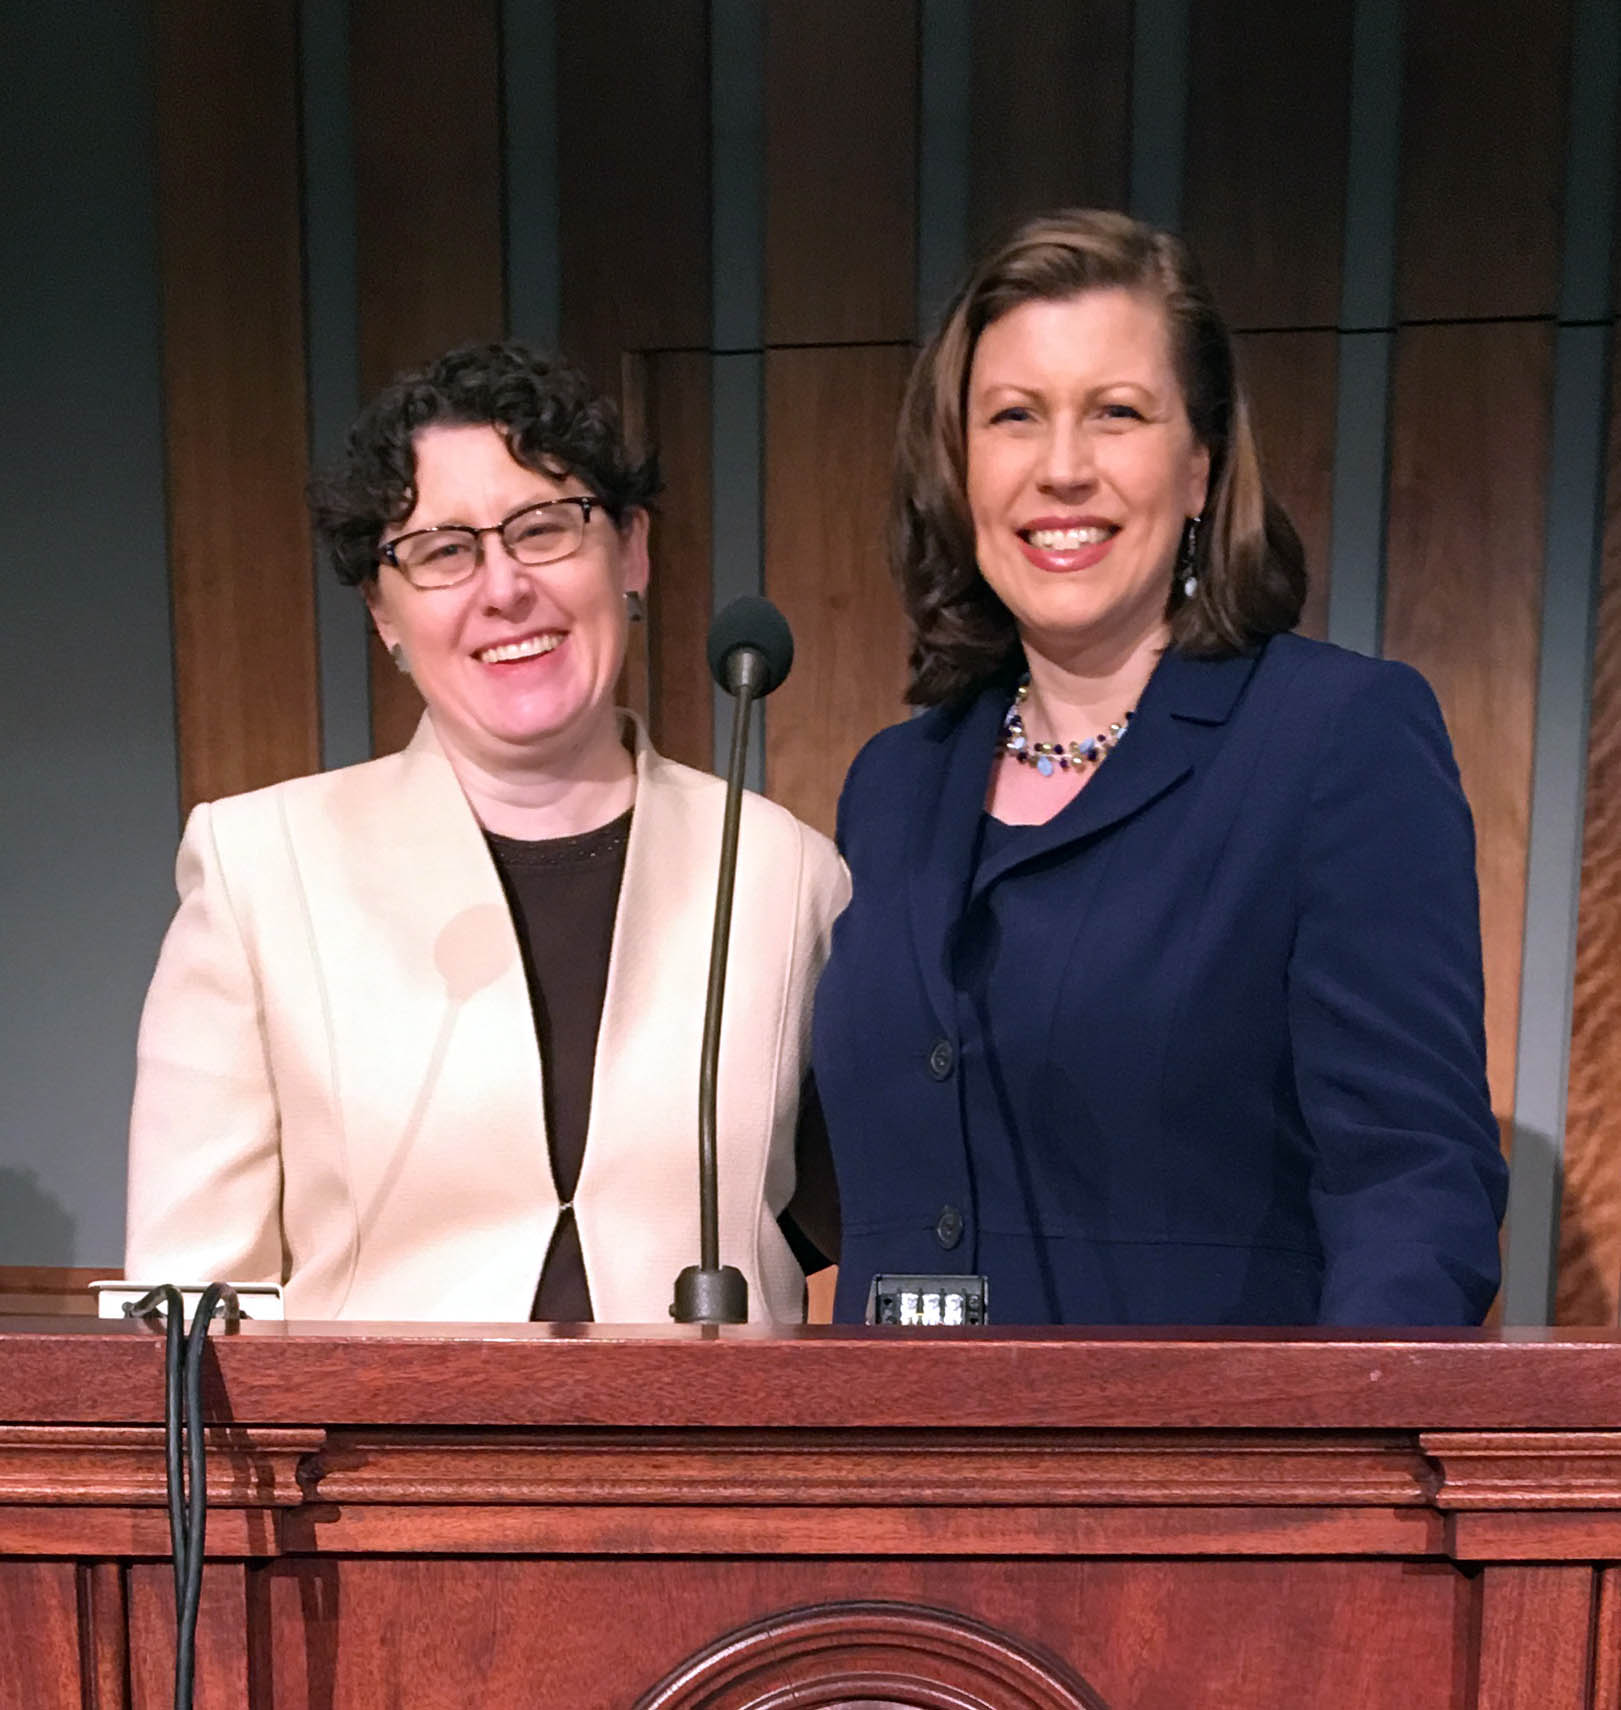 Image for Elizabeth Clark and Hannah Clayson Smith speak at BYU Women's Conference, May 2018